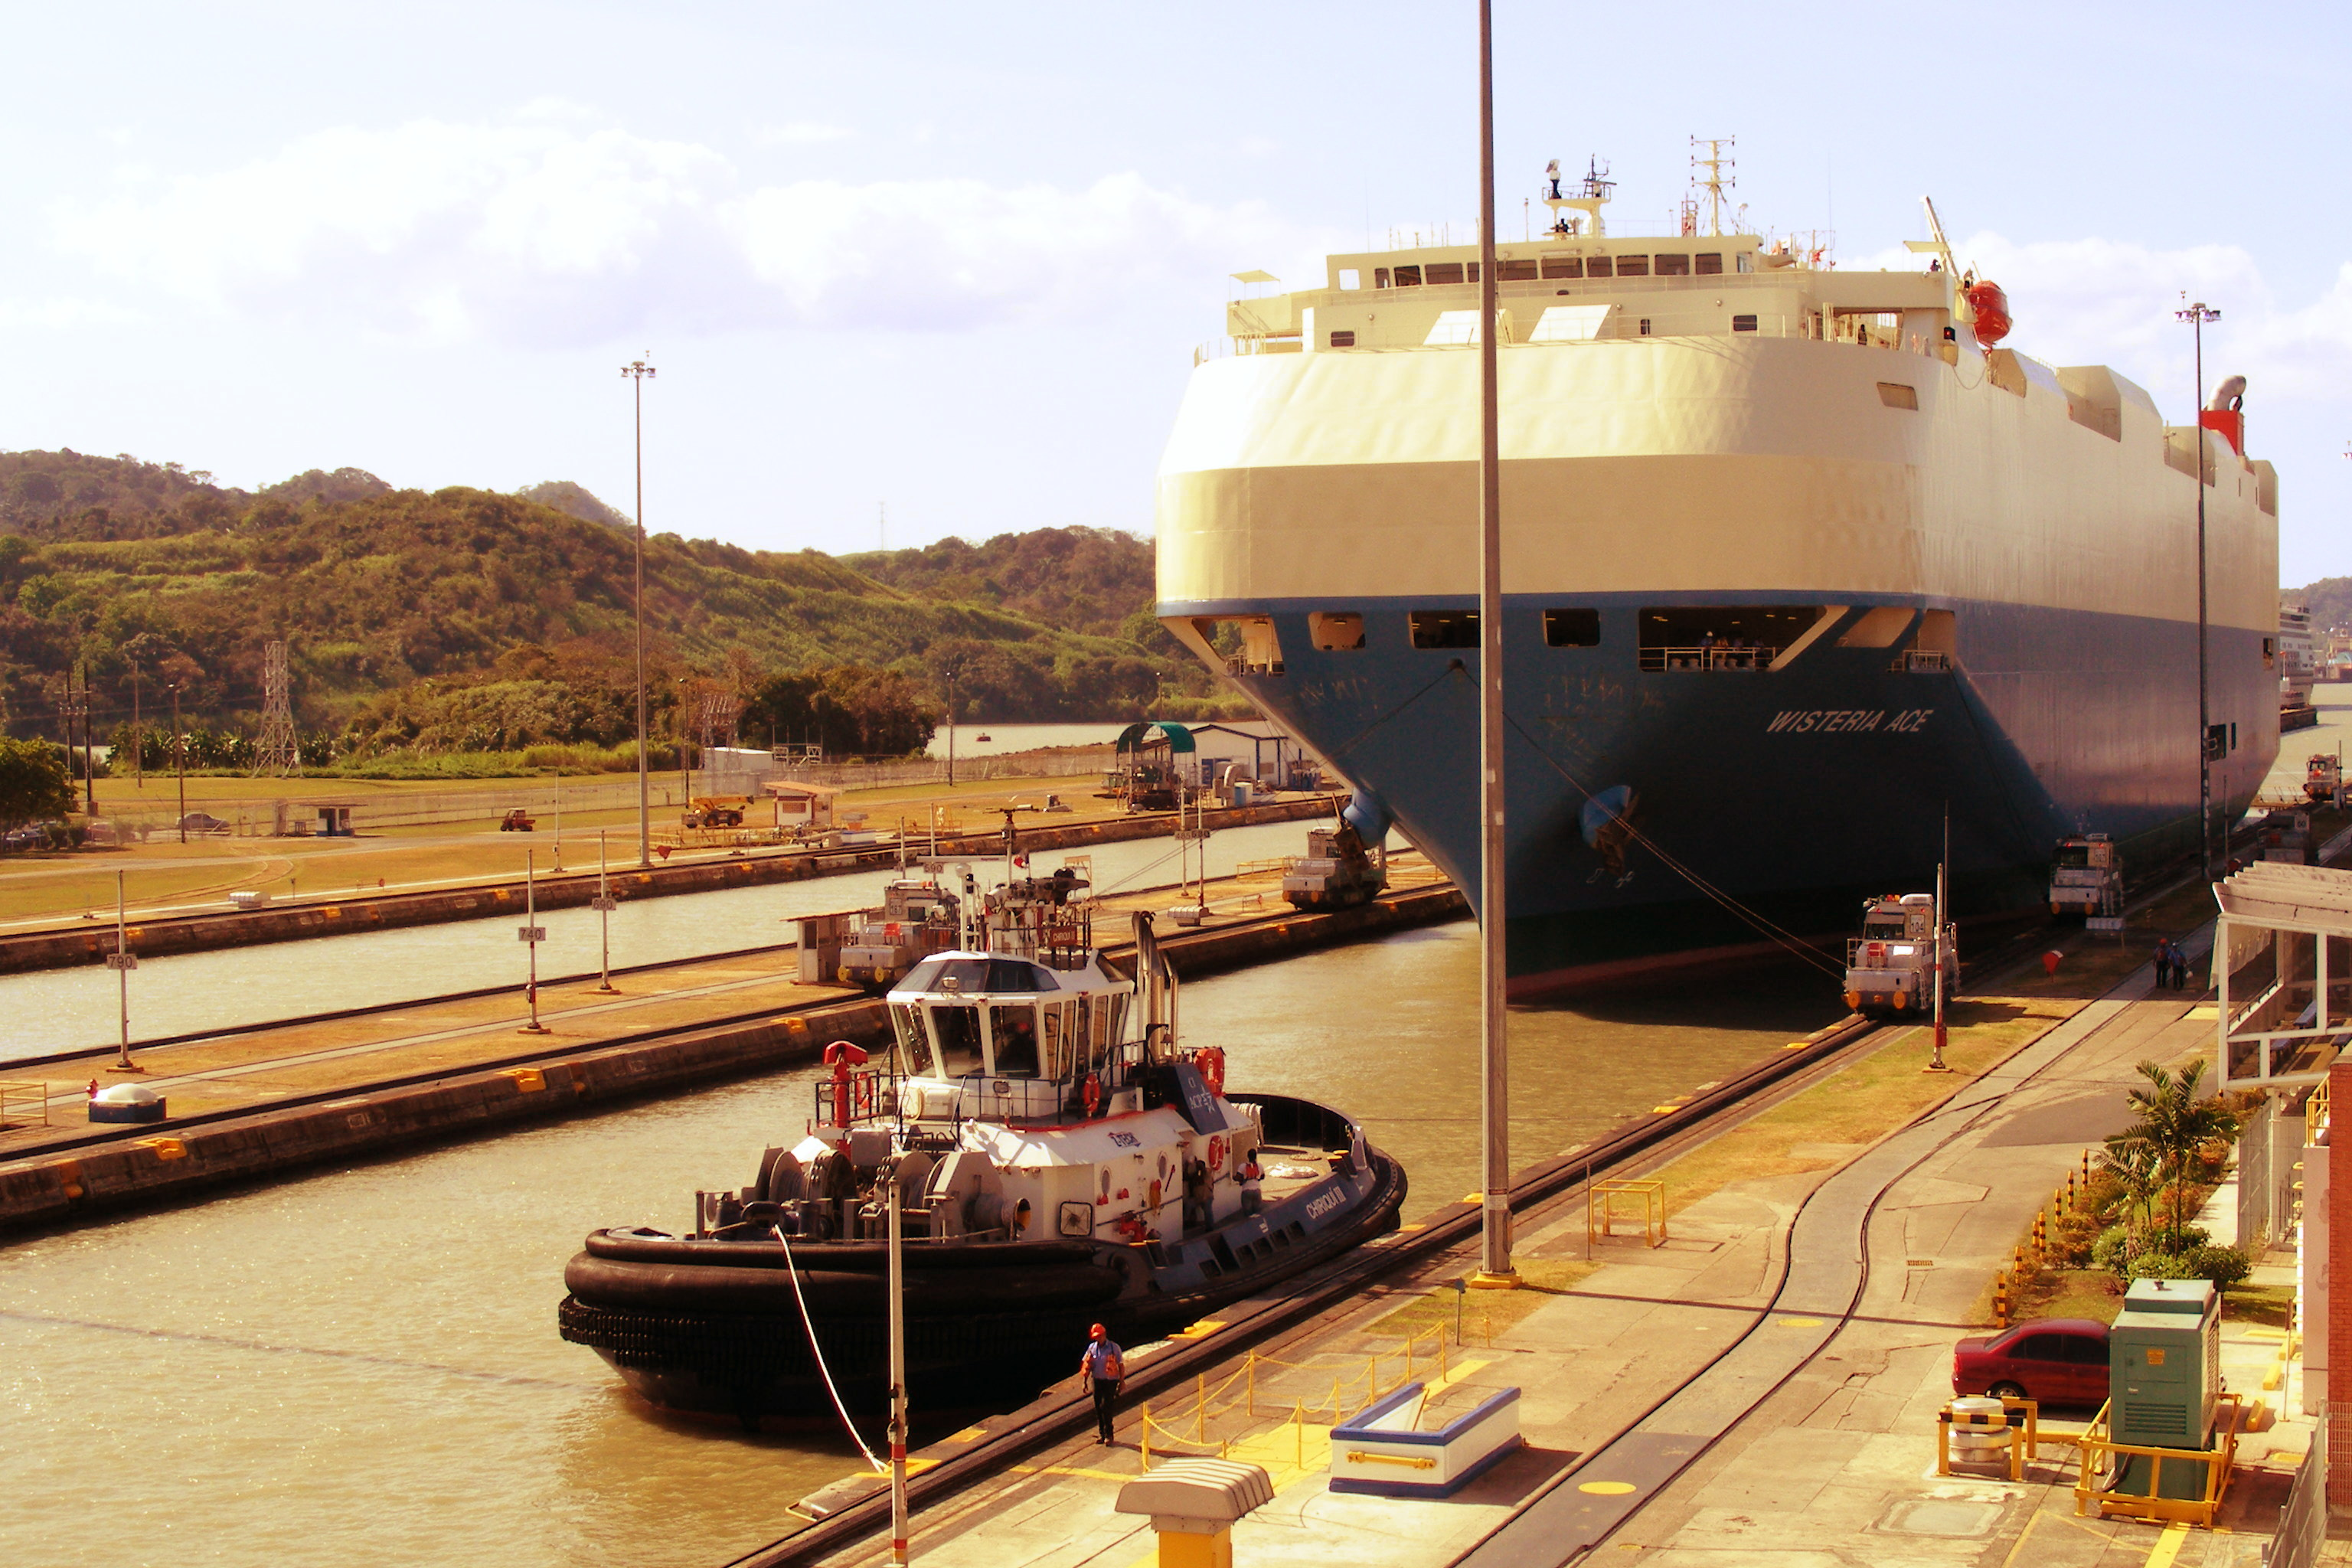 Tugboat_and_a_Ship_-_Panama_Canal